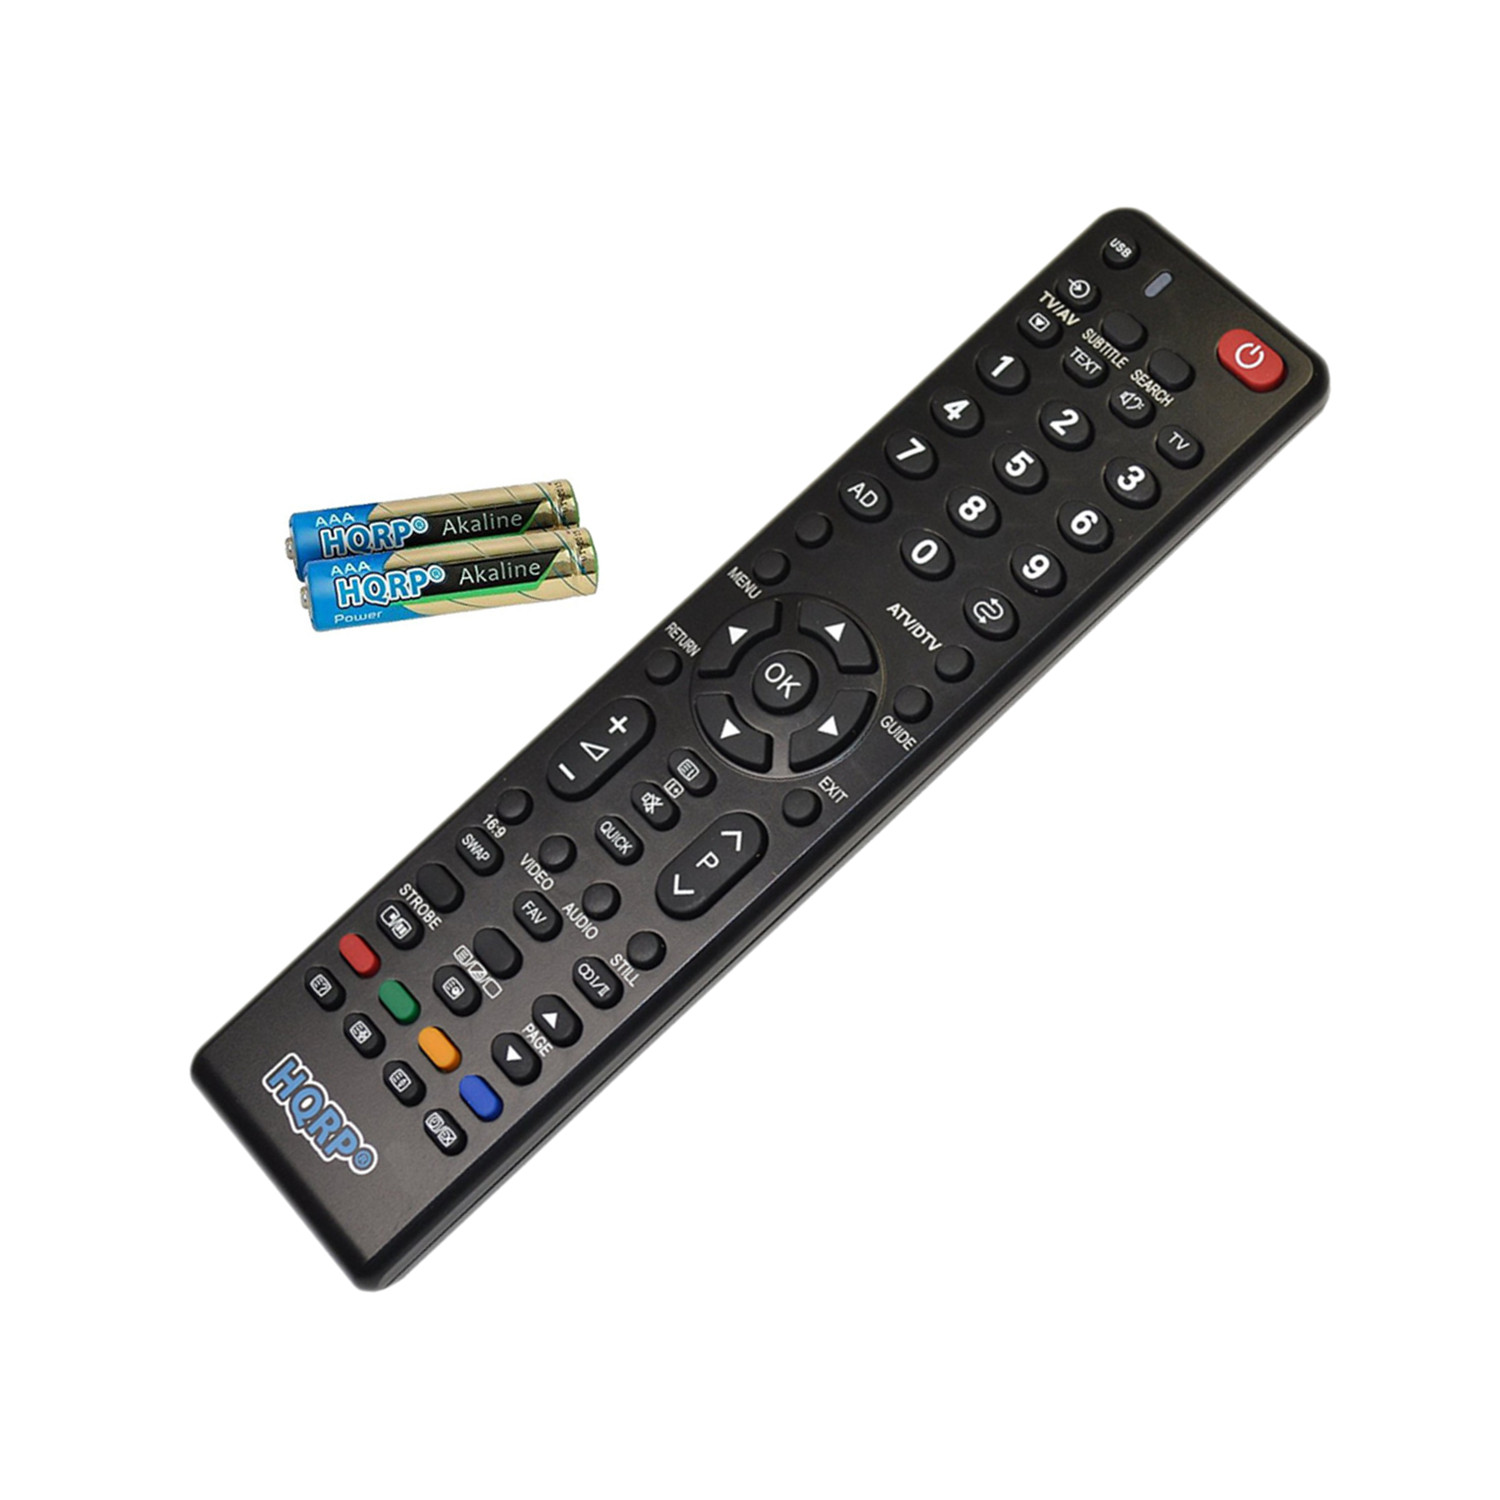 HQRP Remote Control for Toshiba 58L4300U, 58L5400U, 58L7300U, 58L7300UM, 58L7350U, 58L8400U LCD LED HD TV Smart 1080p 3D Ultra 4K + HQRP Coaster